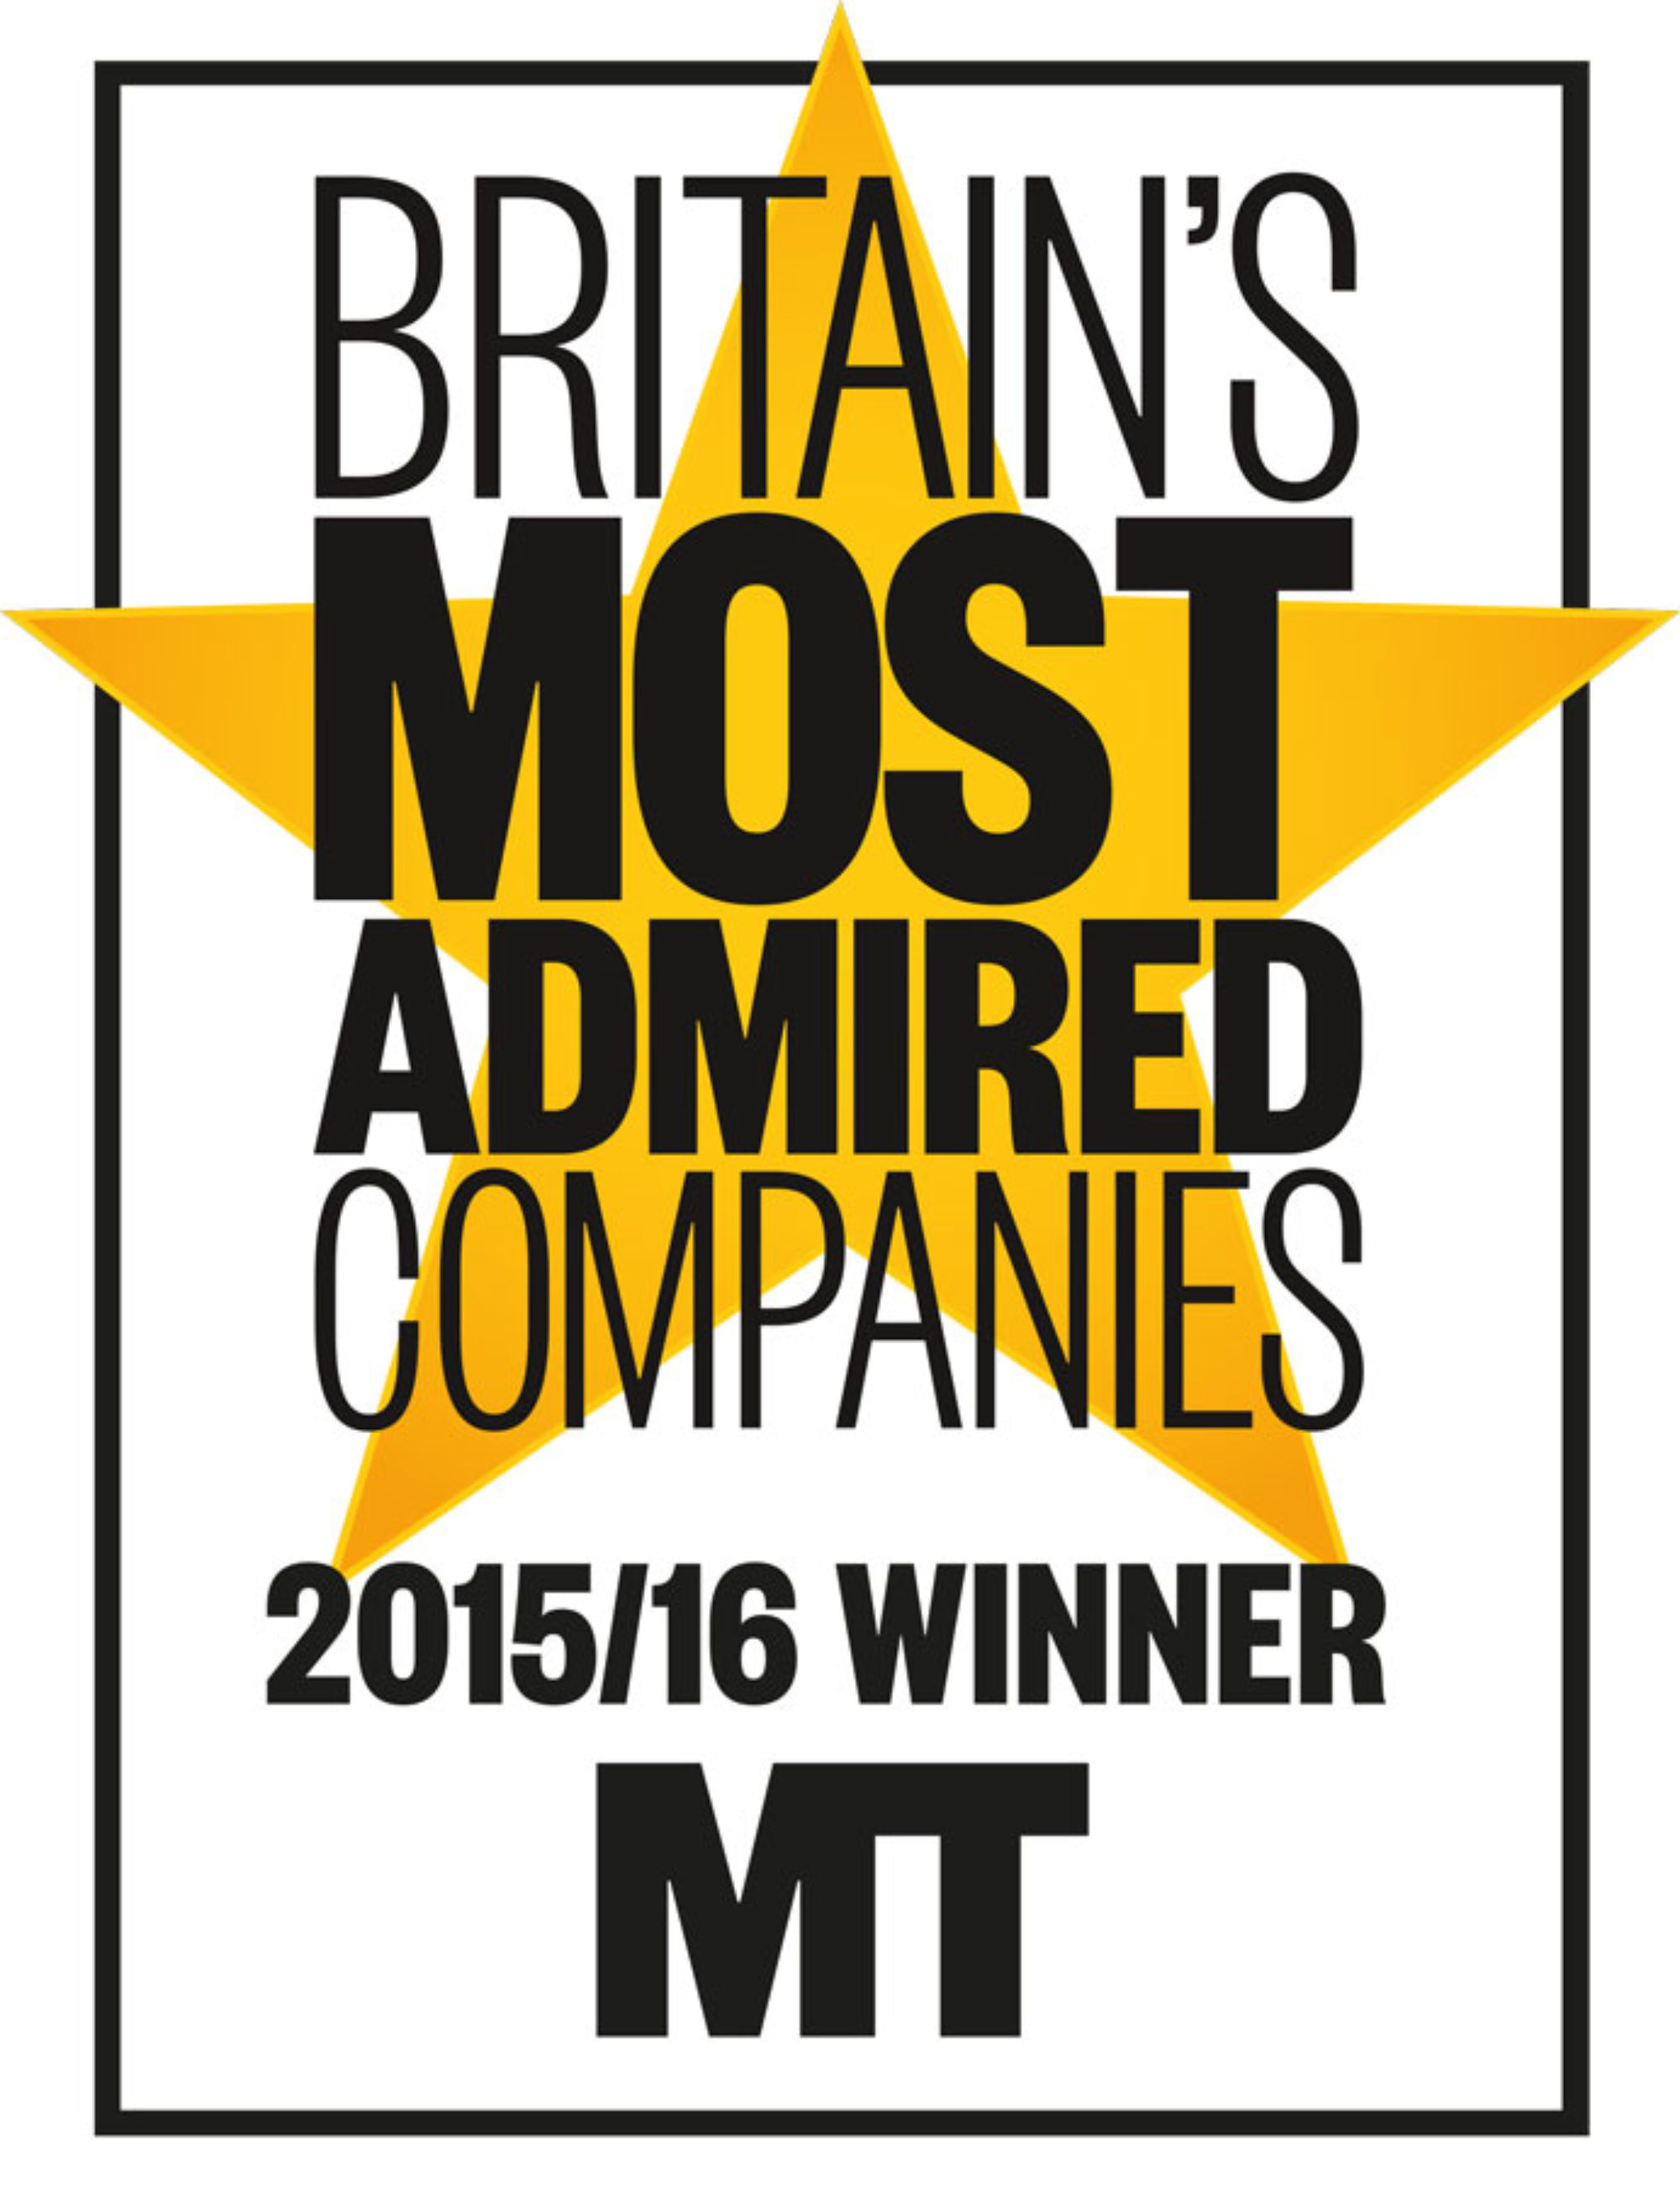 Derwent London again in top 10 in Britain's Most Admired Companies awards 2015